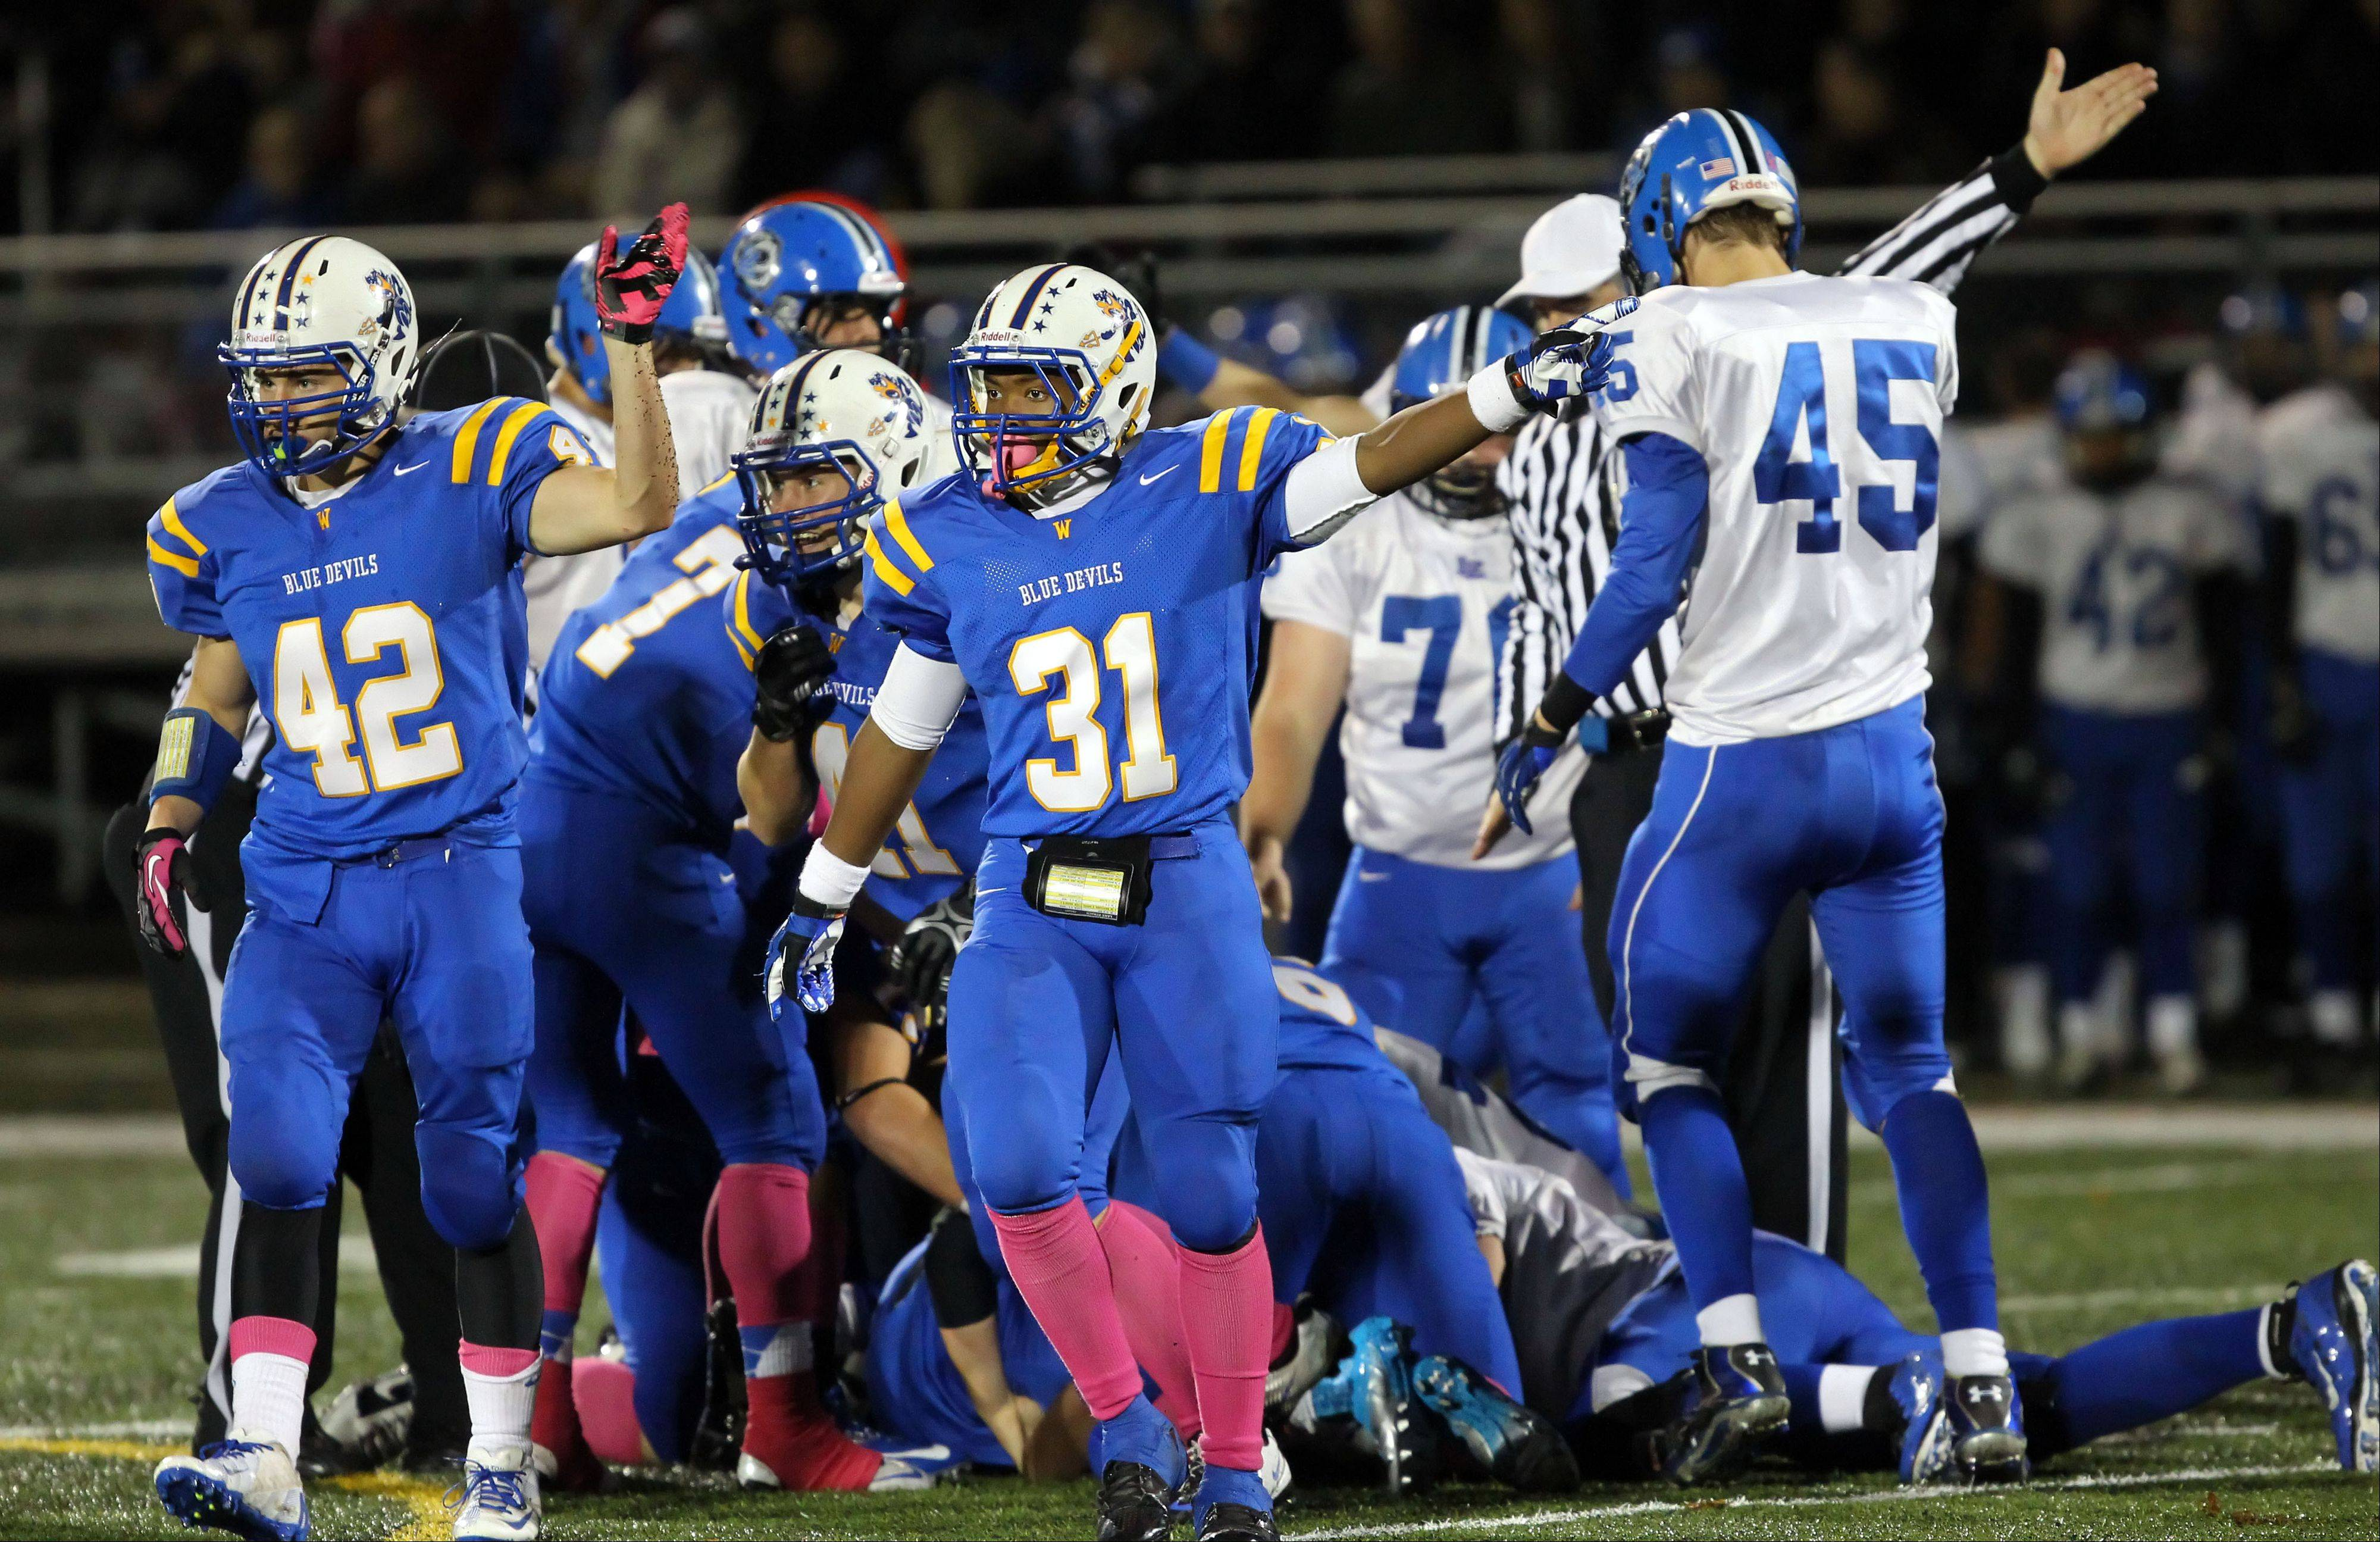 Members of the Warren defense signals after recovering a Lake Zurich fumble.